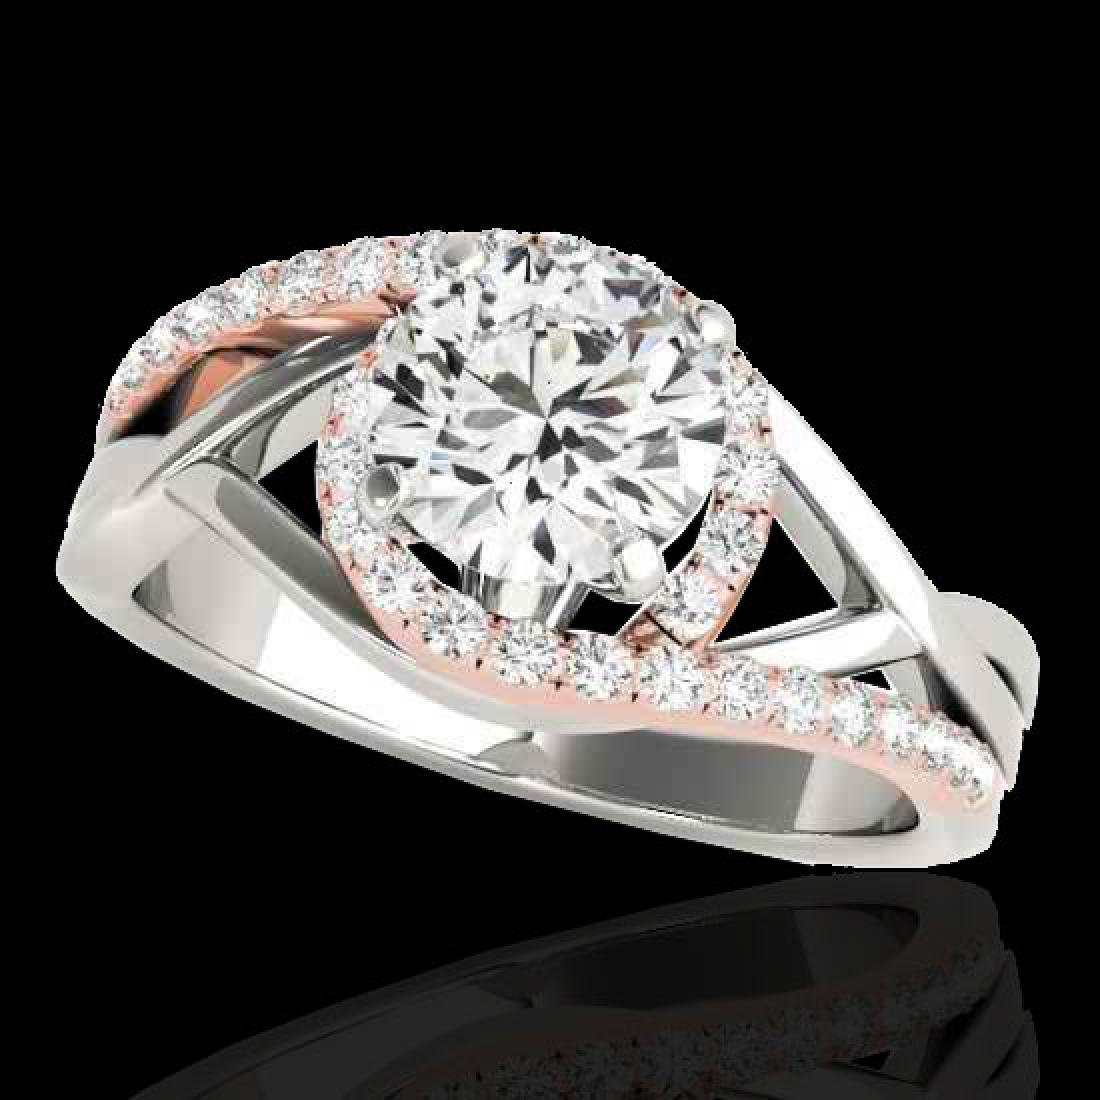 1.8 CTW H-SI/I Certified Diamond Bypass Solitaire Ring